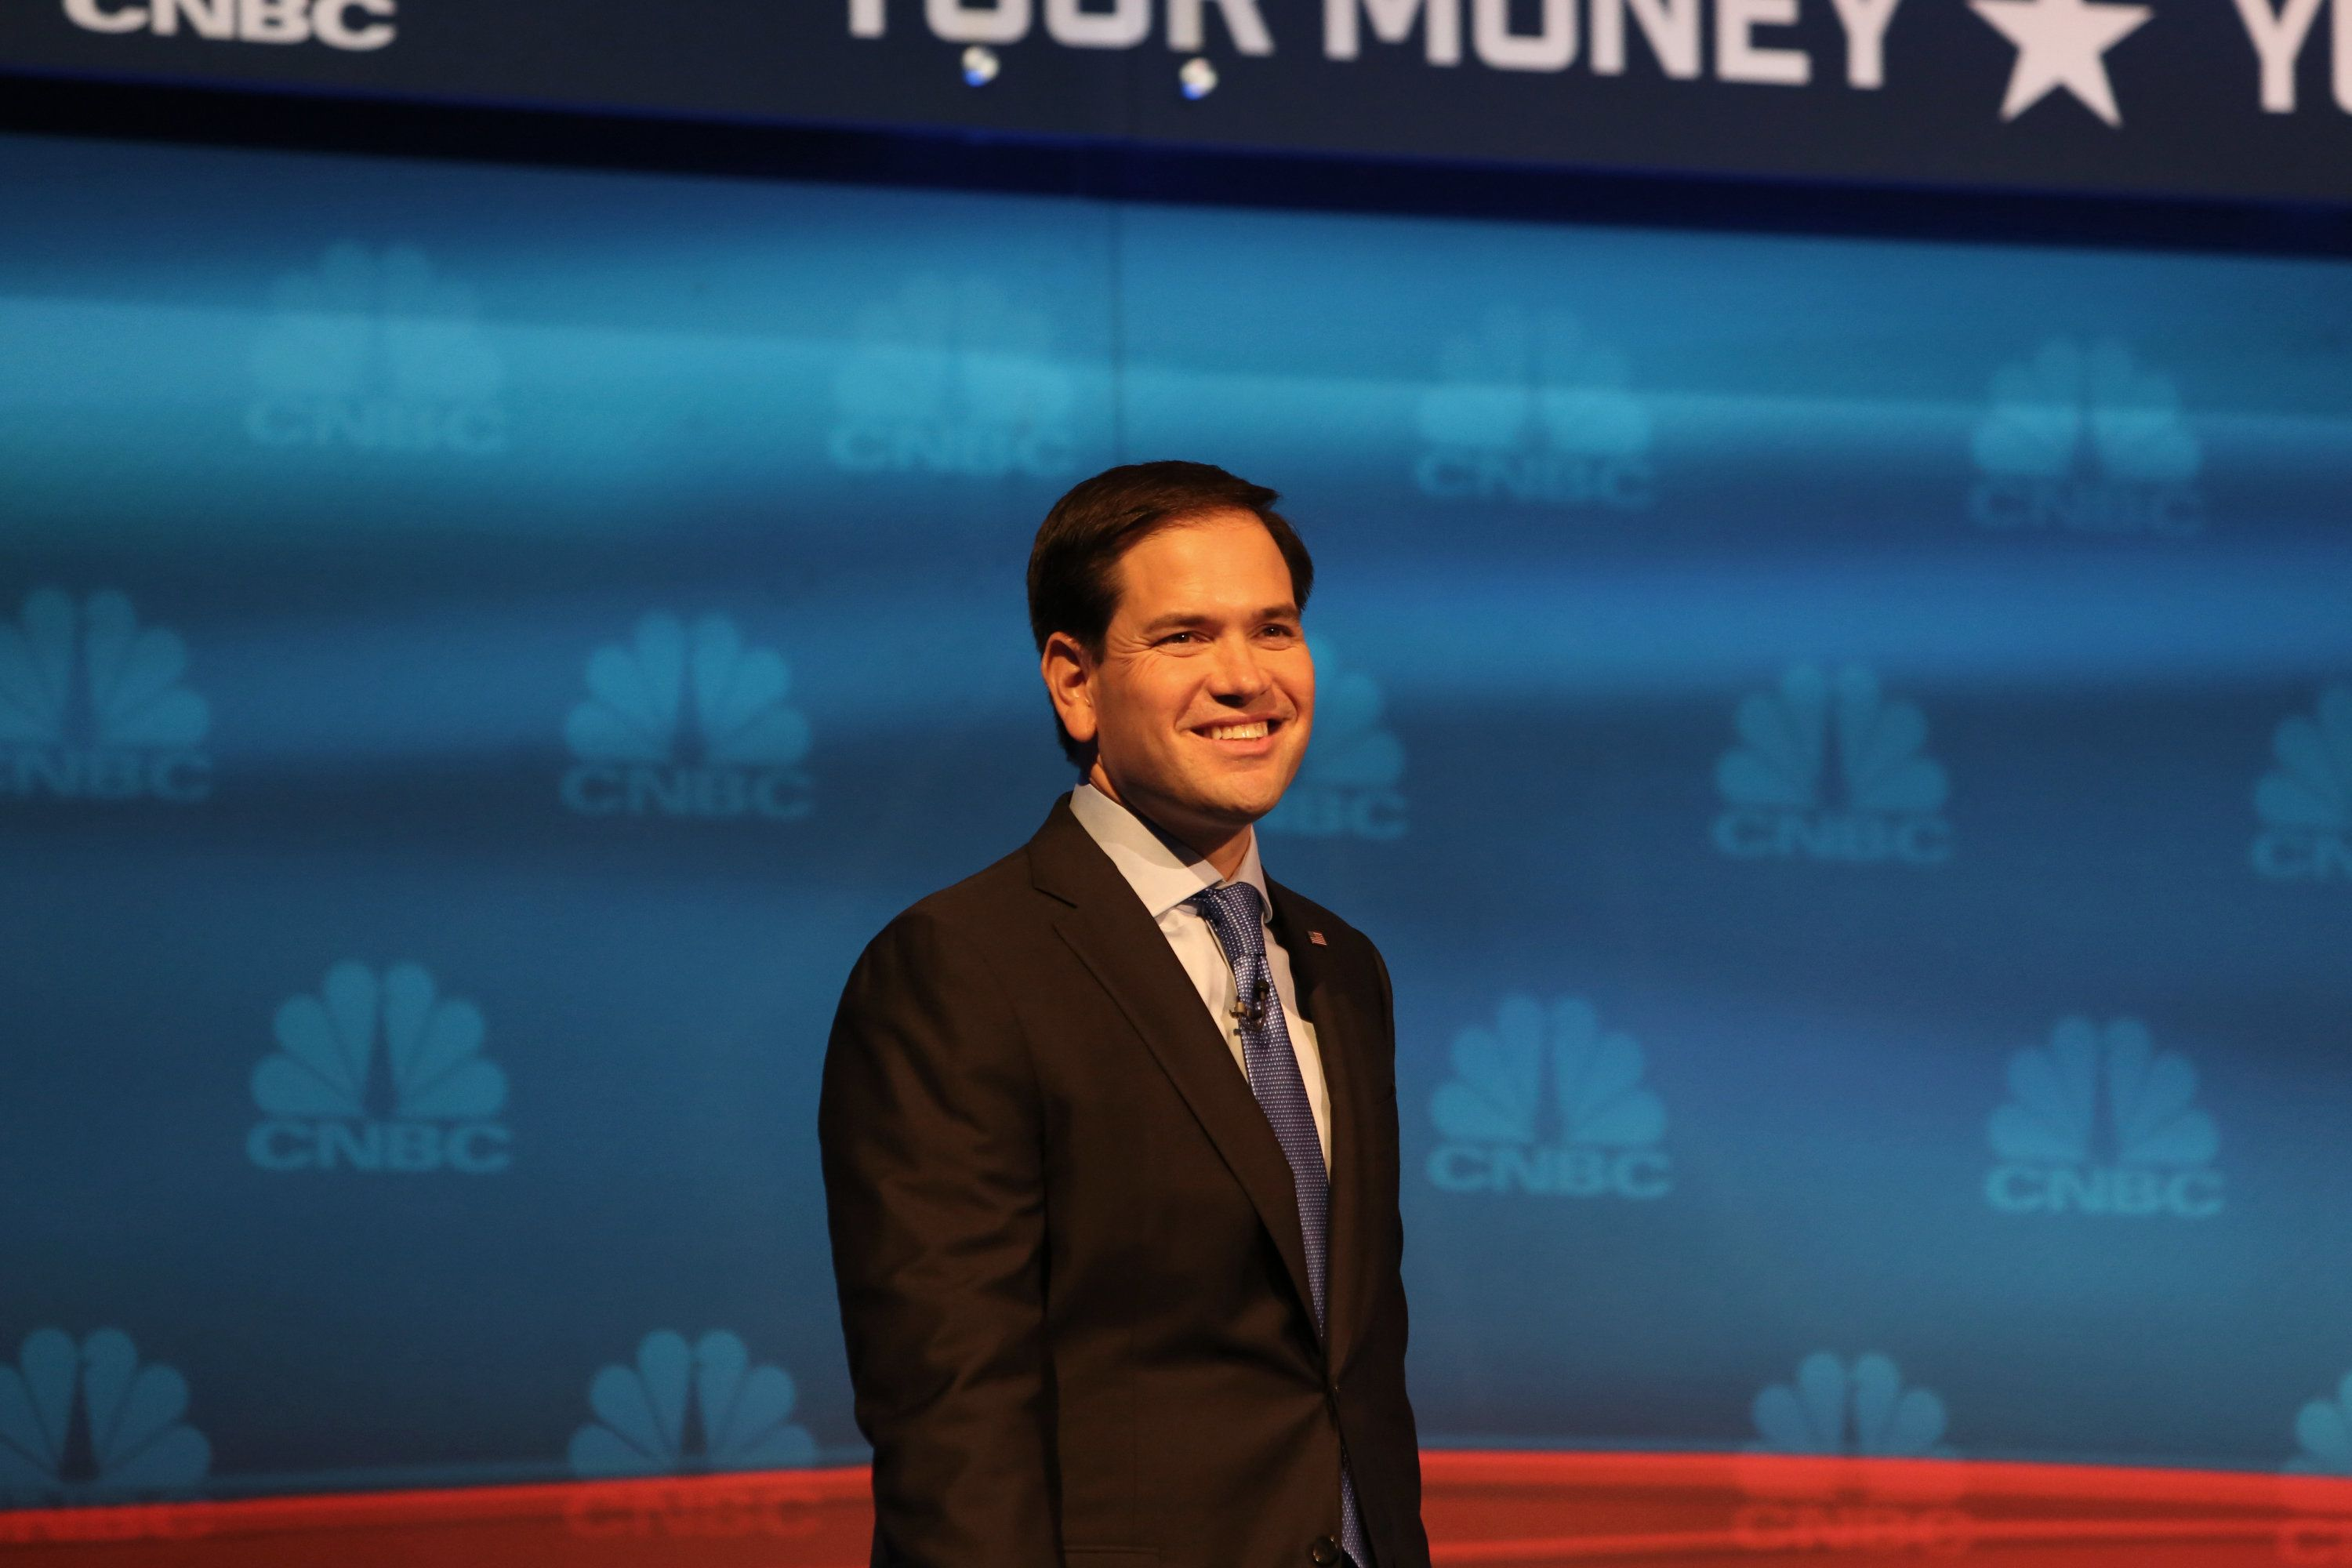 CNBC EVENTS -- The Republican Presidential Debate: Your Money, Your Vote -- Pictured: Marco Rubio participate in CNBC's 'Your Money, Your Vote: The Republican Presidential Debate' live from the University of Colorado Boulder in Boulder, Colorado Wednesday, October 28th at 6PM ET / 8PM ET -- (Photo by: Jason Bahr/CNBC/NBCU Photo Bank via Getty Images)